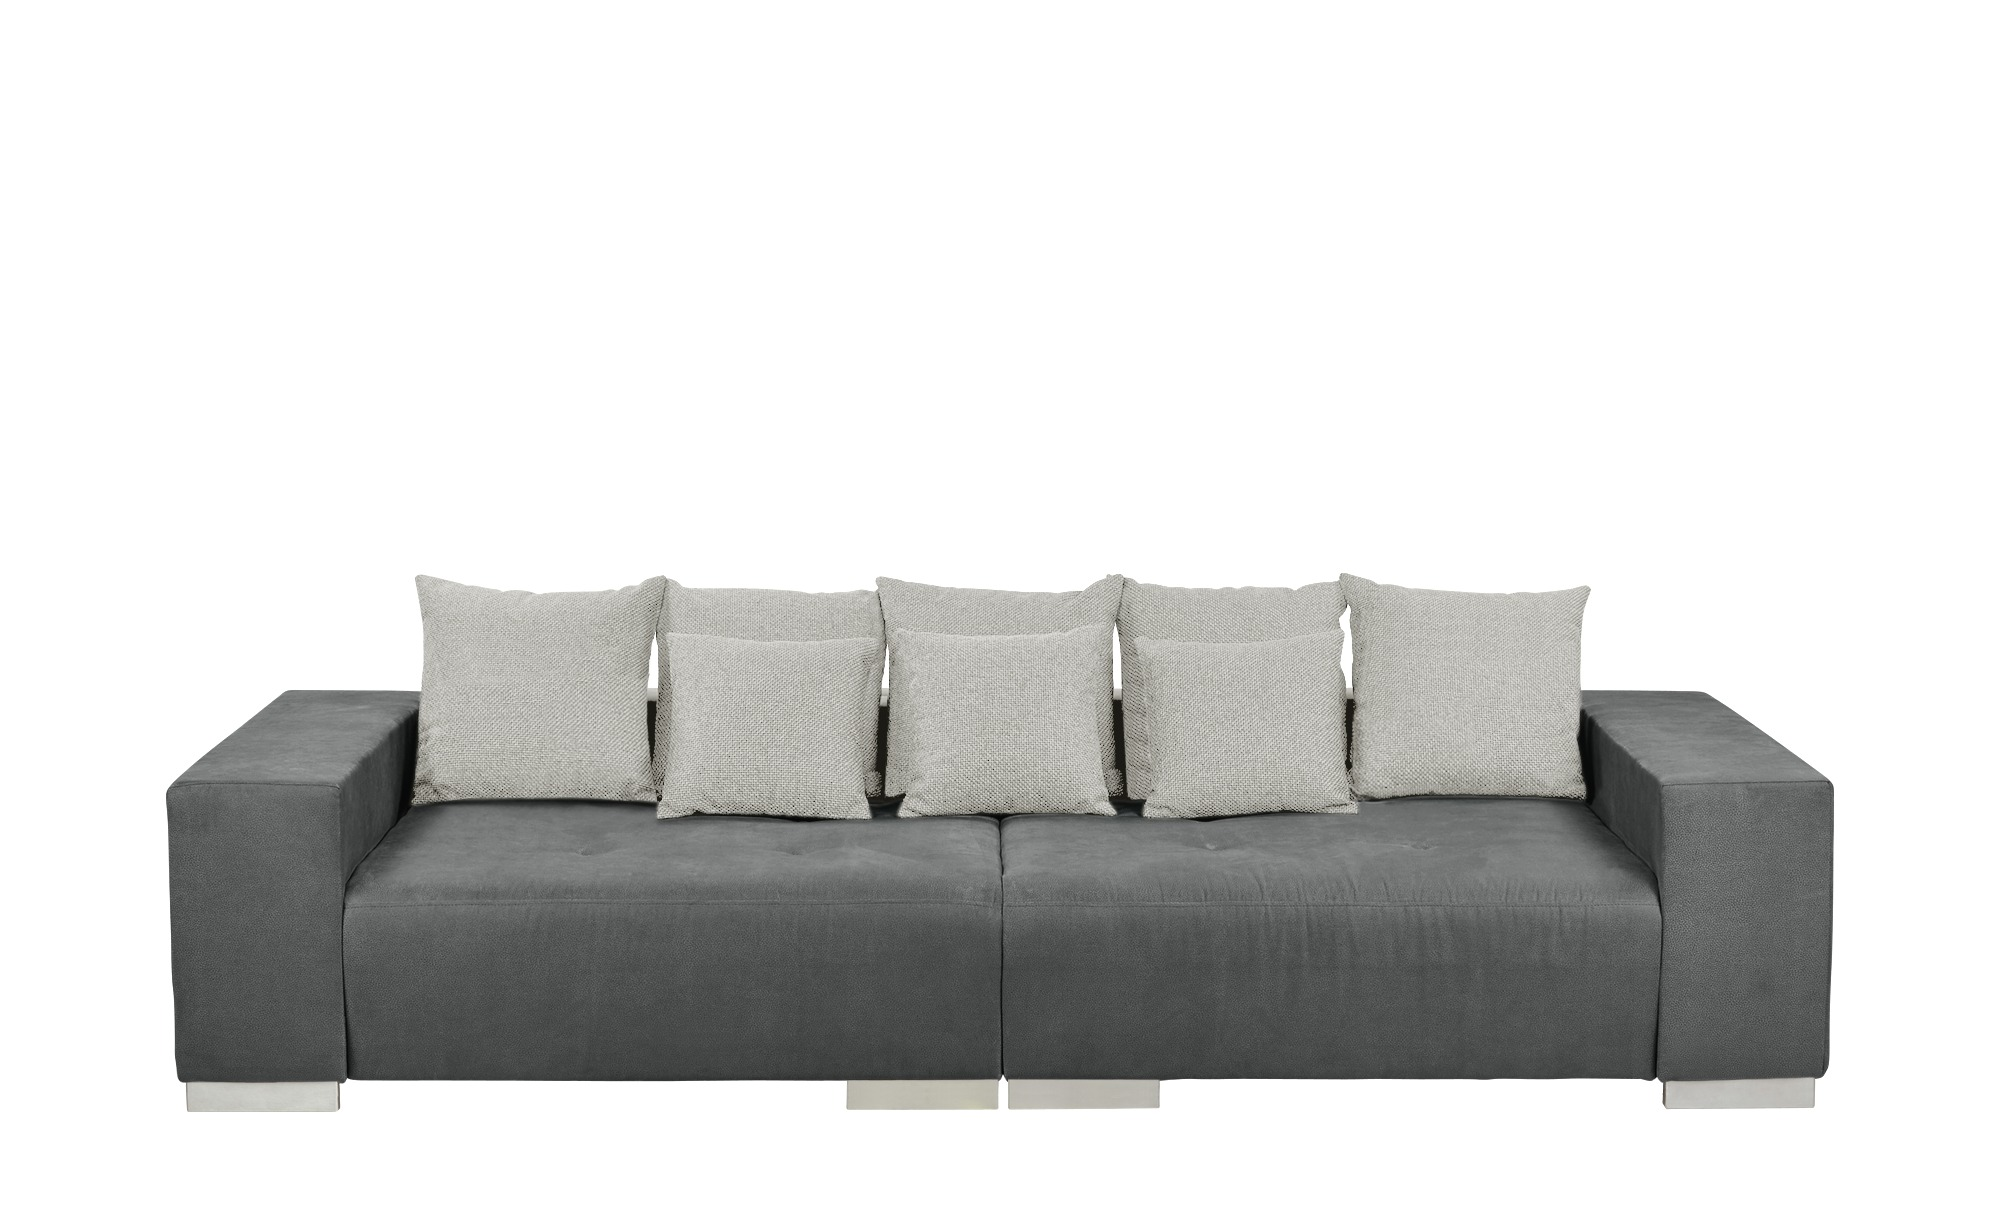 switch Big Sofa  Maxima ¦ grau Polstermöbel > Sofas > Big-Sofas - Höffner